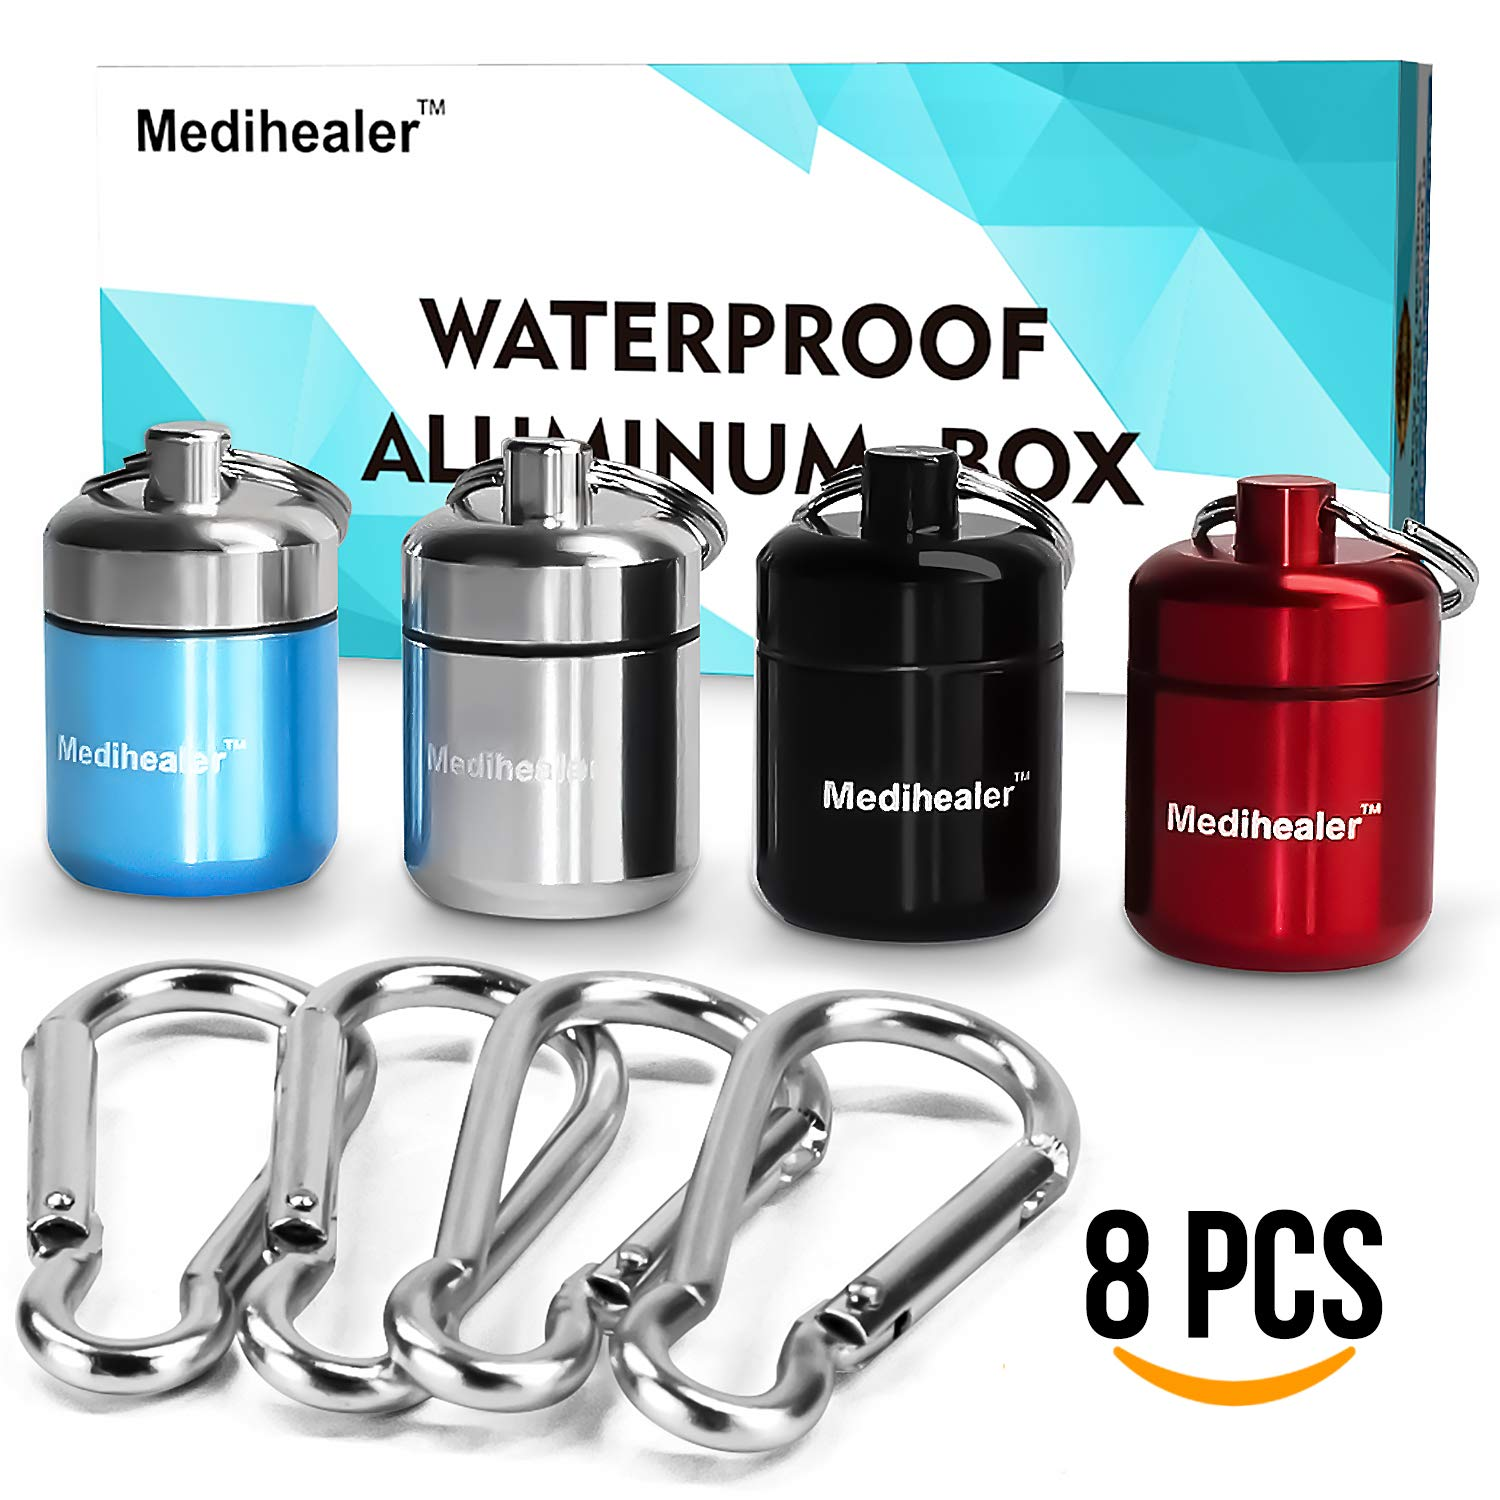 Waterproof Aluminum Pill Box with Keychain - Portable Travel Pill Case Drug Container for First Aid Medicine and Earplugs, Handy for Outdoor Travel Hiking Camping - (4 Cases + 4 Carabiners)